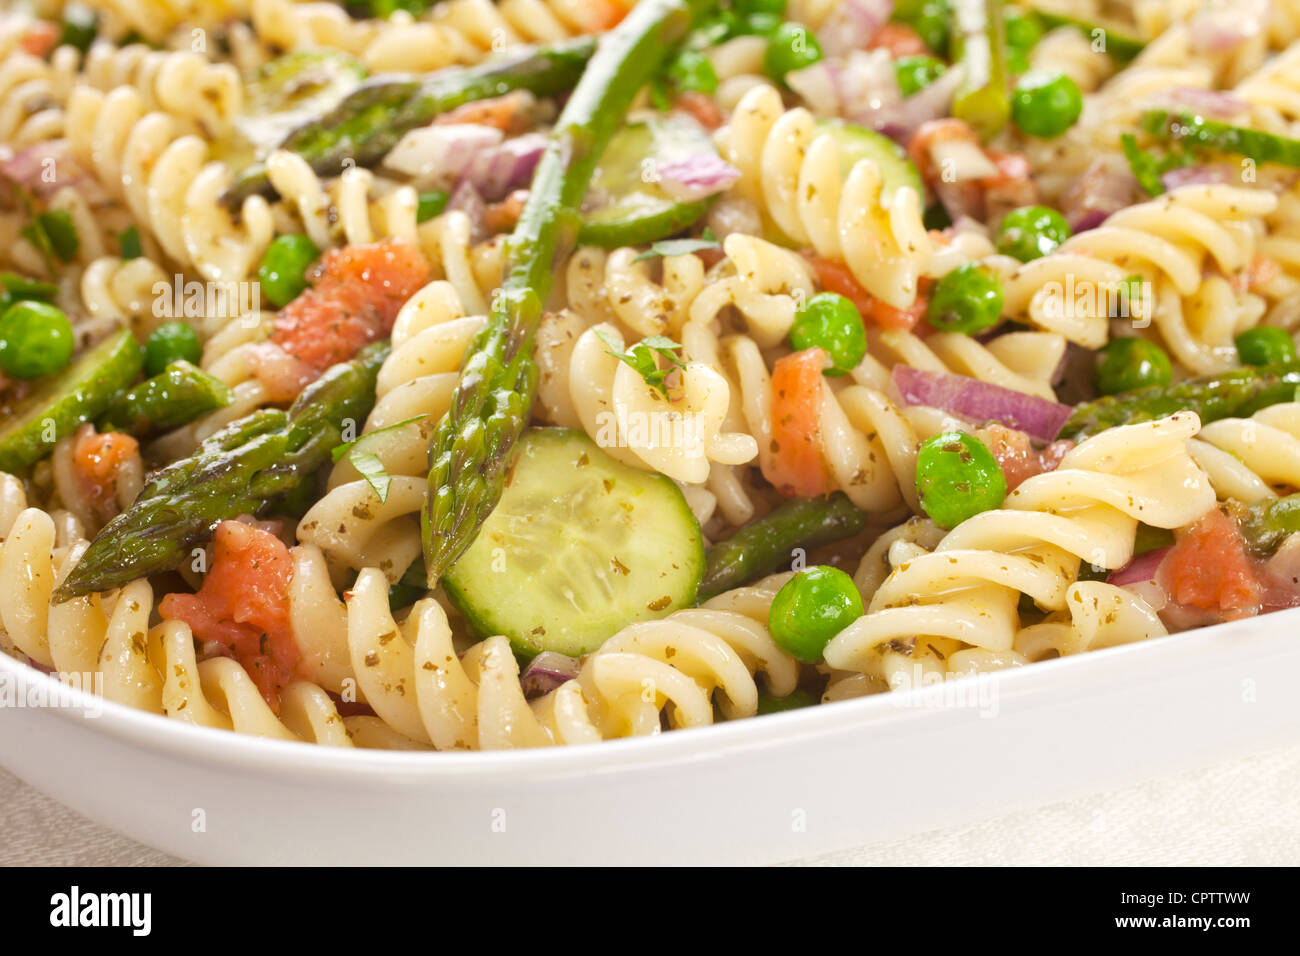 Pasta salad made with asparagus, peas, red onion, cucumber and scraps of left over smoked salmon. - Stock Image